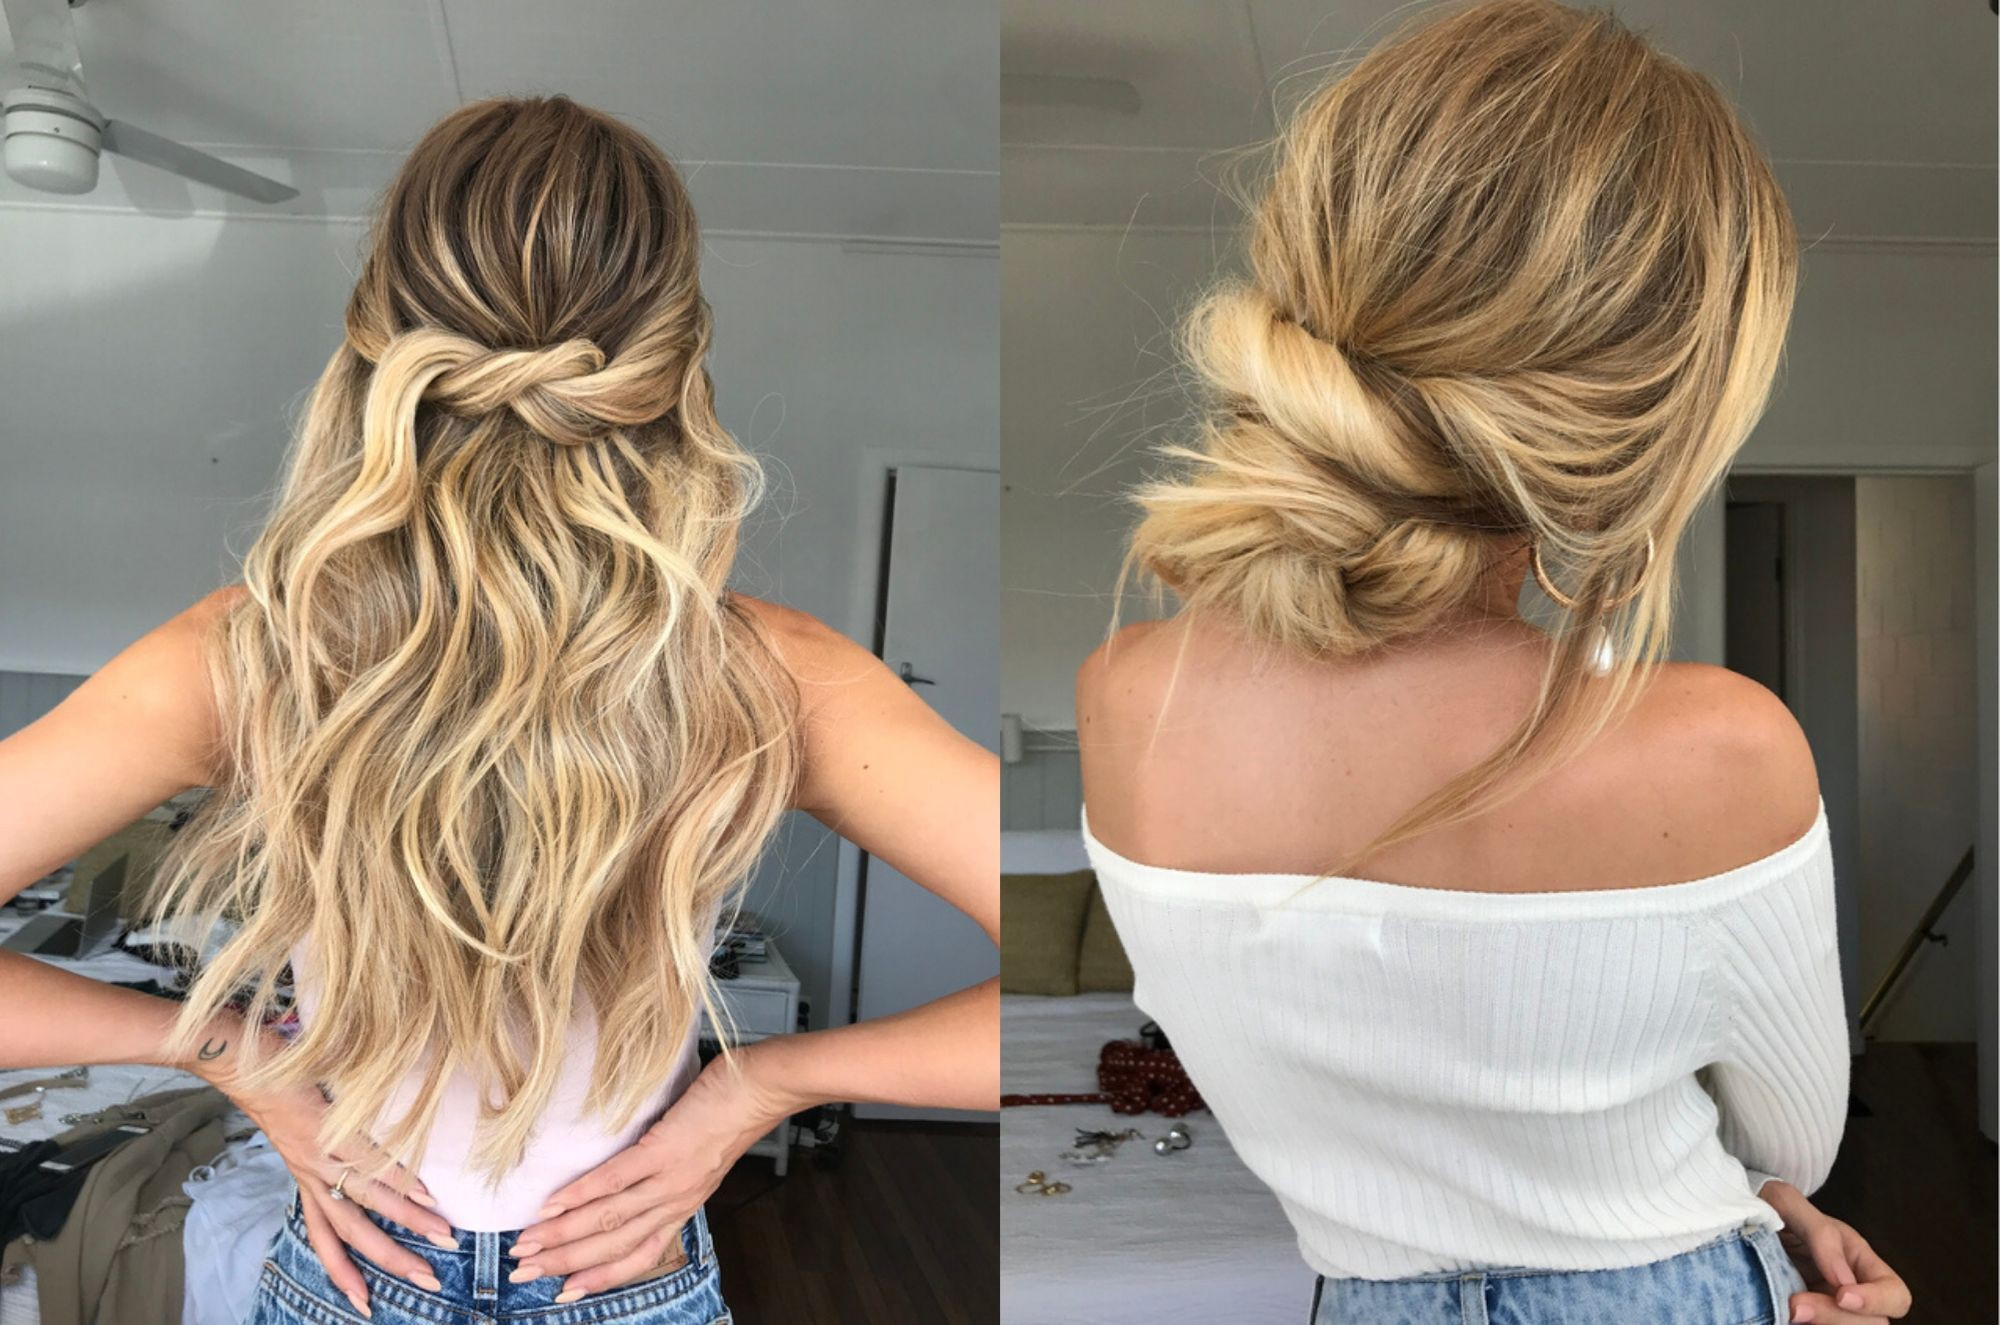 Halo Hair Extensions – An Affordable Alternative For an Impressive Appearance